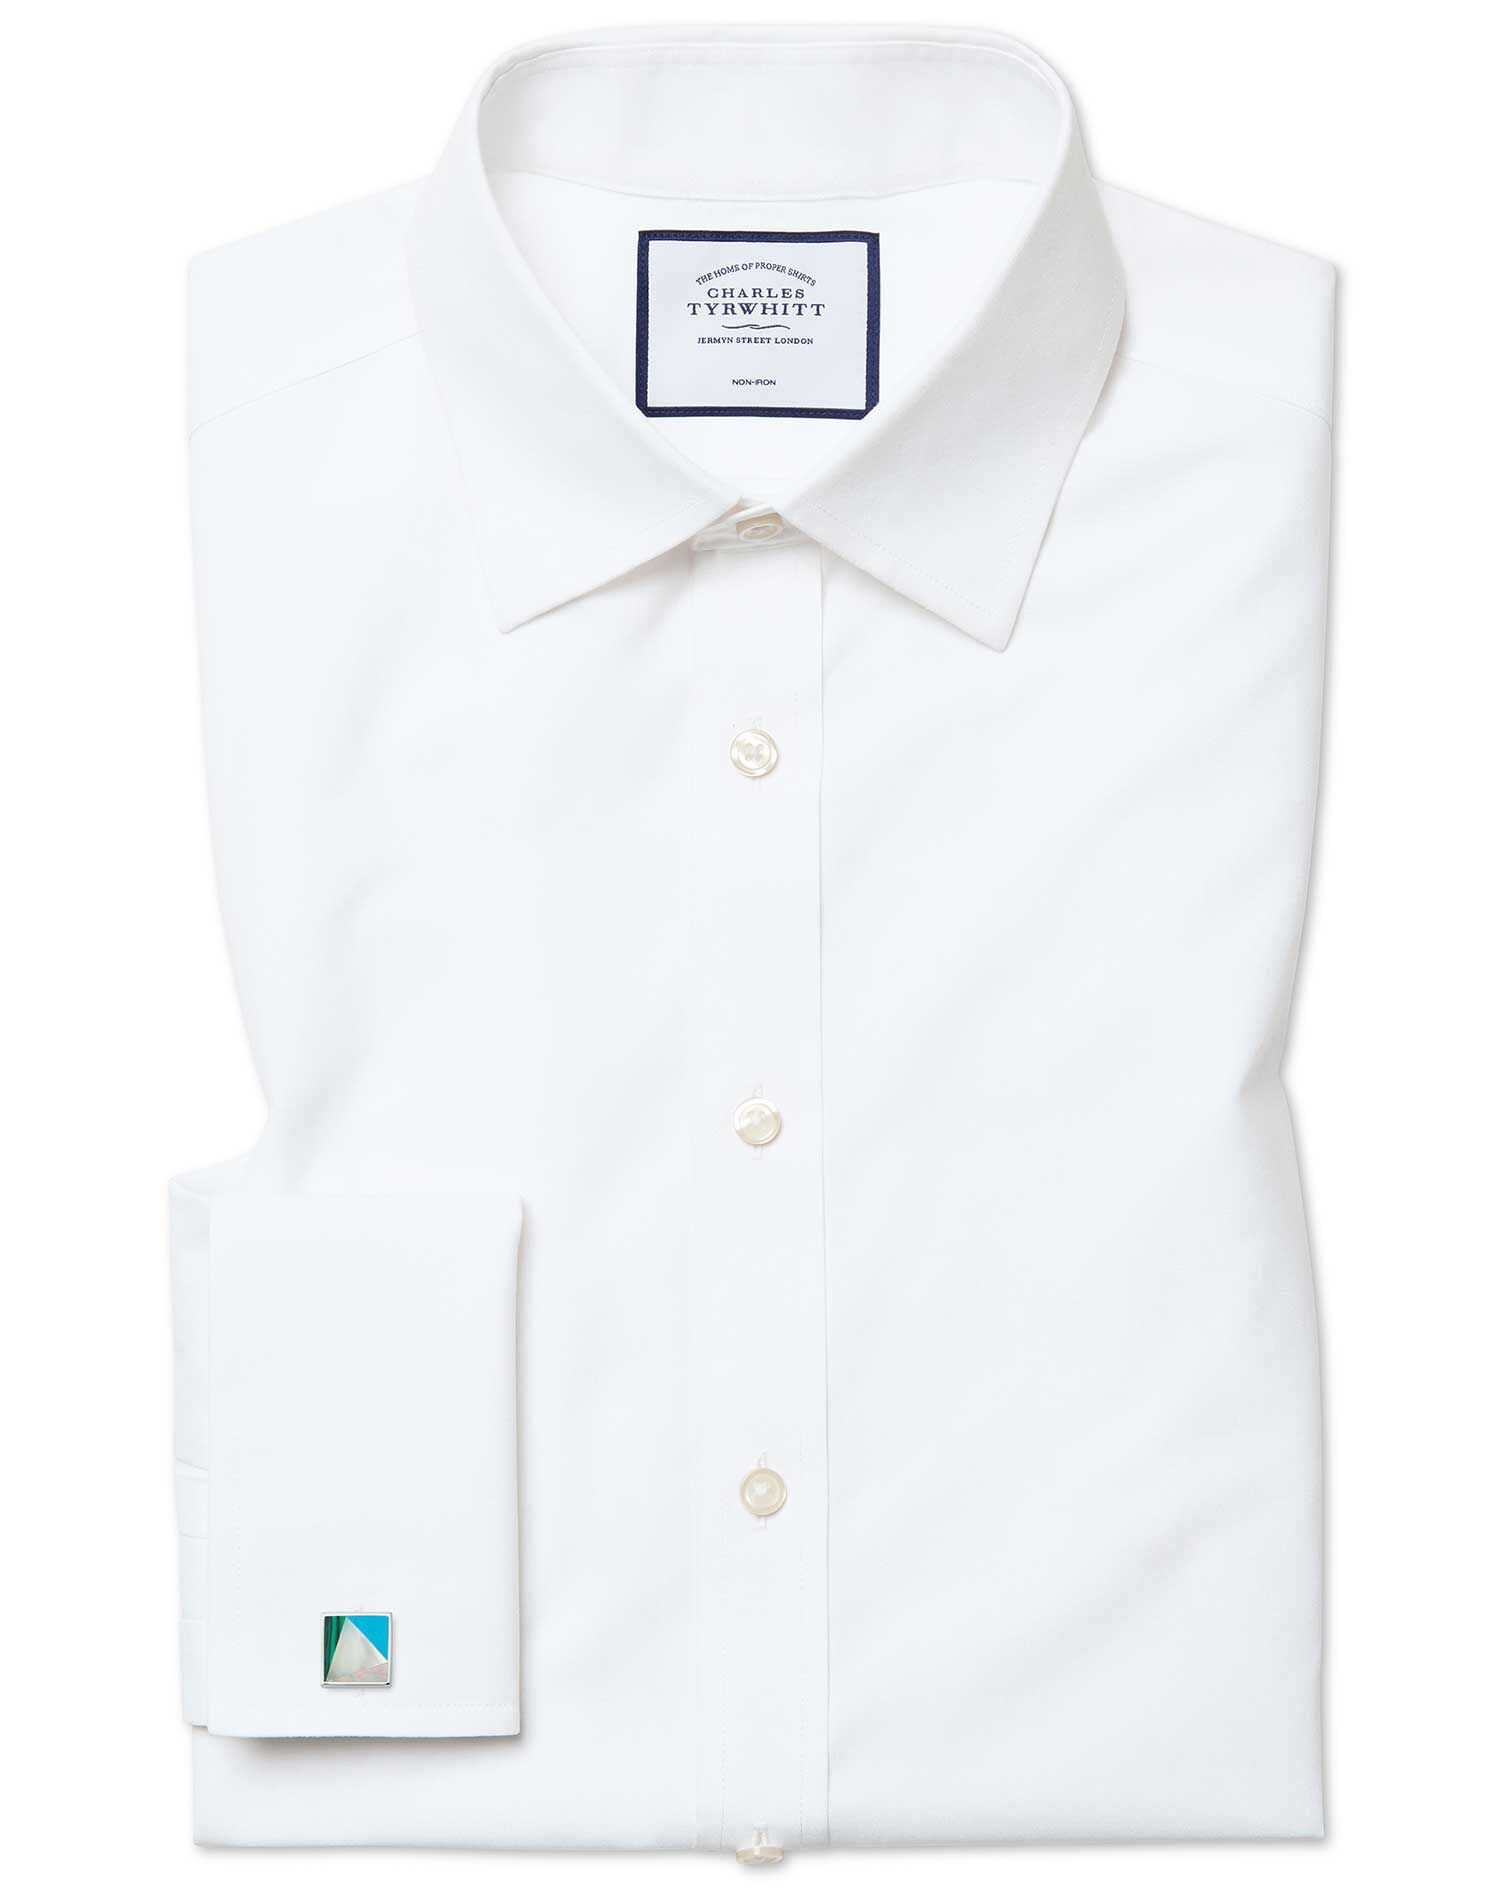 Classic Fit Non-Iron Poplin White Cotton Formal Shirt Double Cuff Size 17/38 by Charles Tyrwhitt